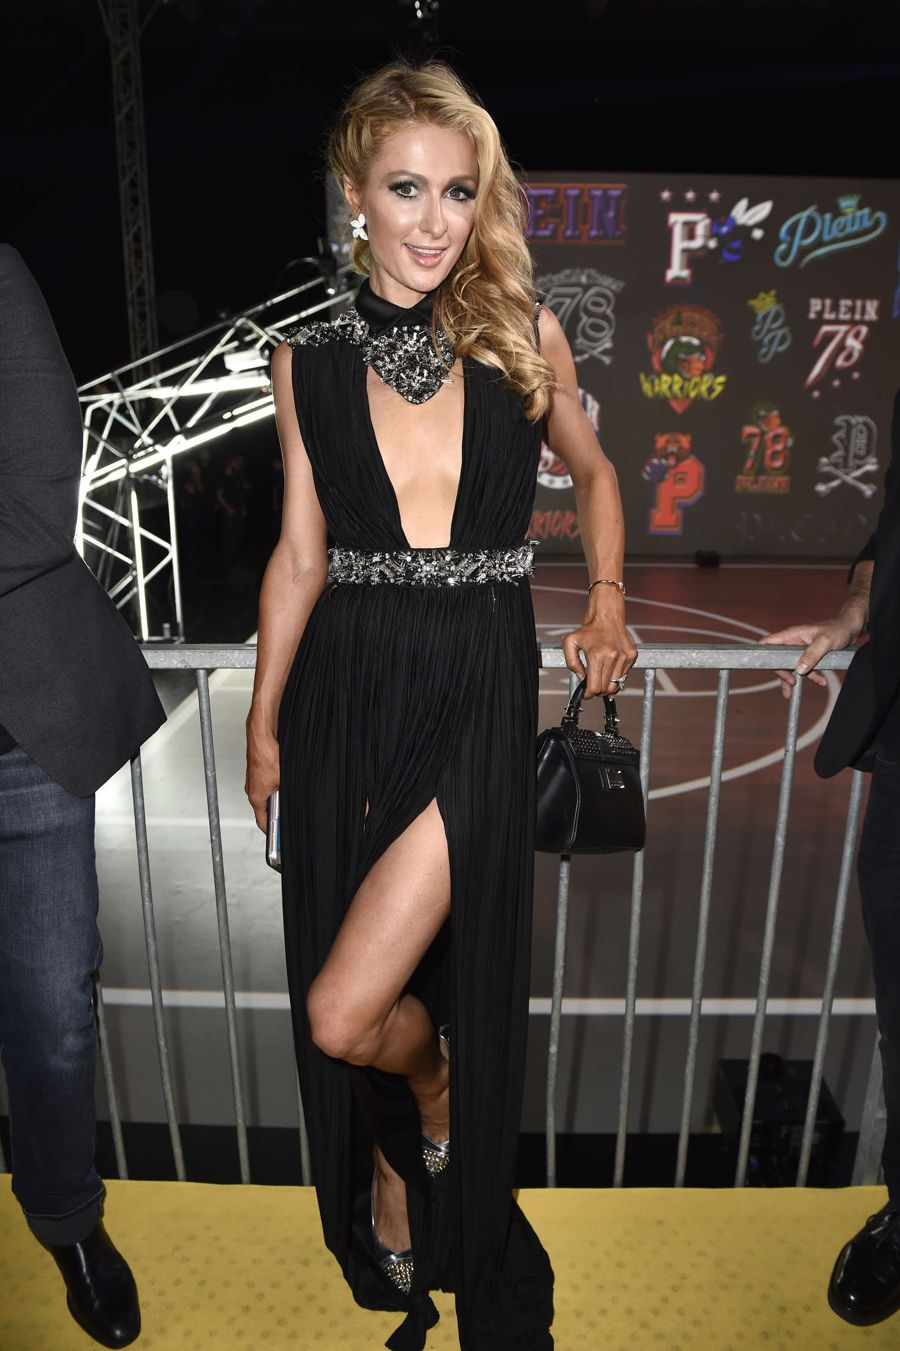 Paris Hilton - Philip Plein Fashion Show 2016 in Milan